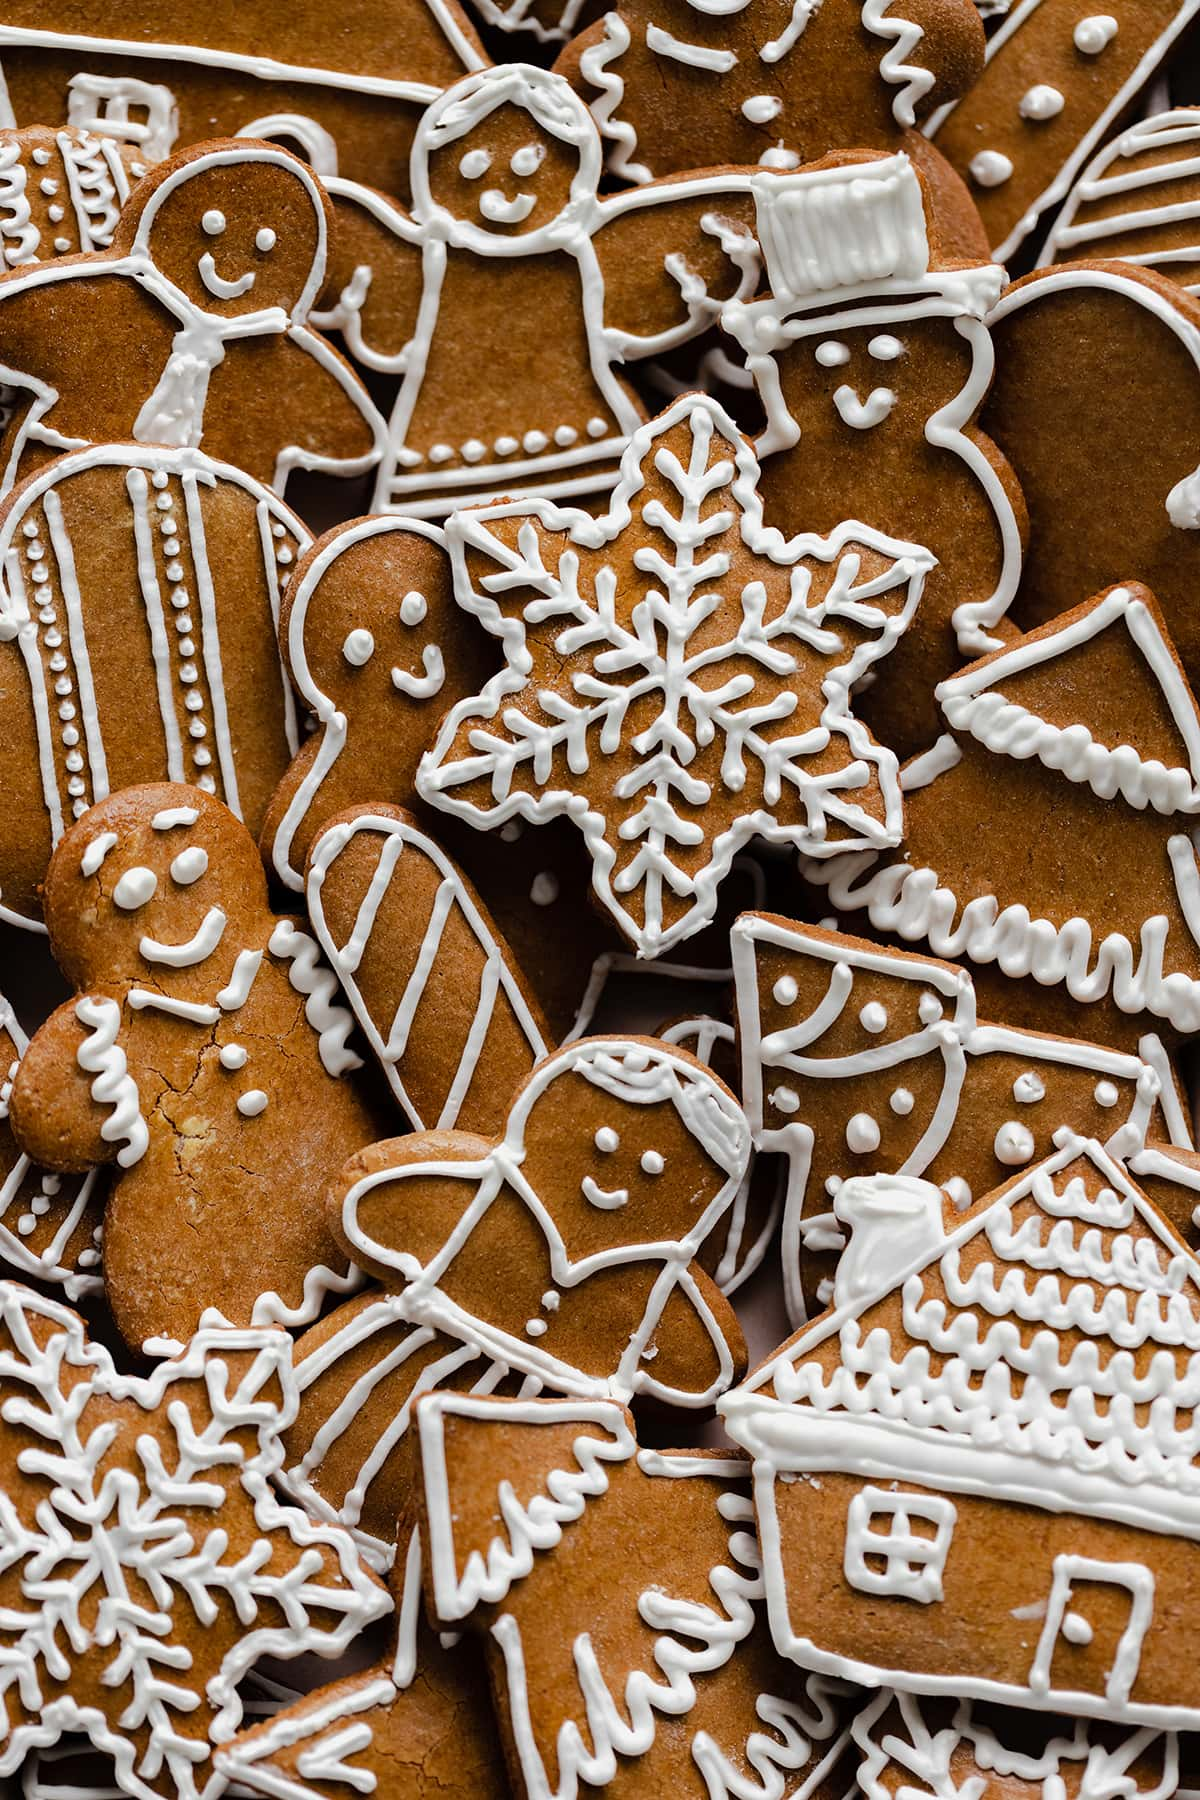 A close up of decorated gingerbread cookies.